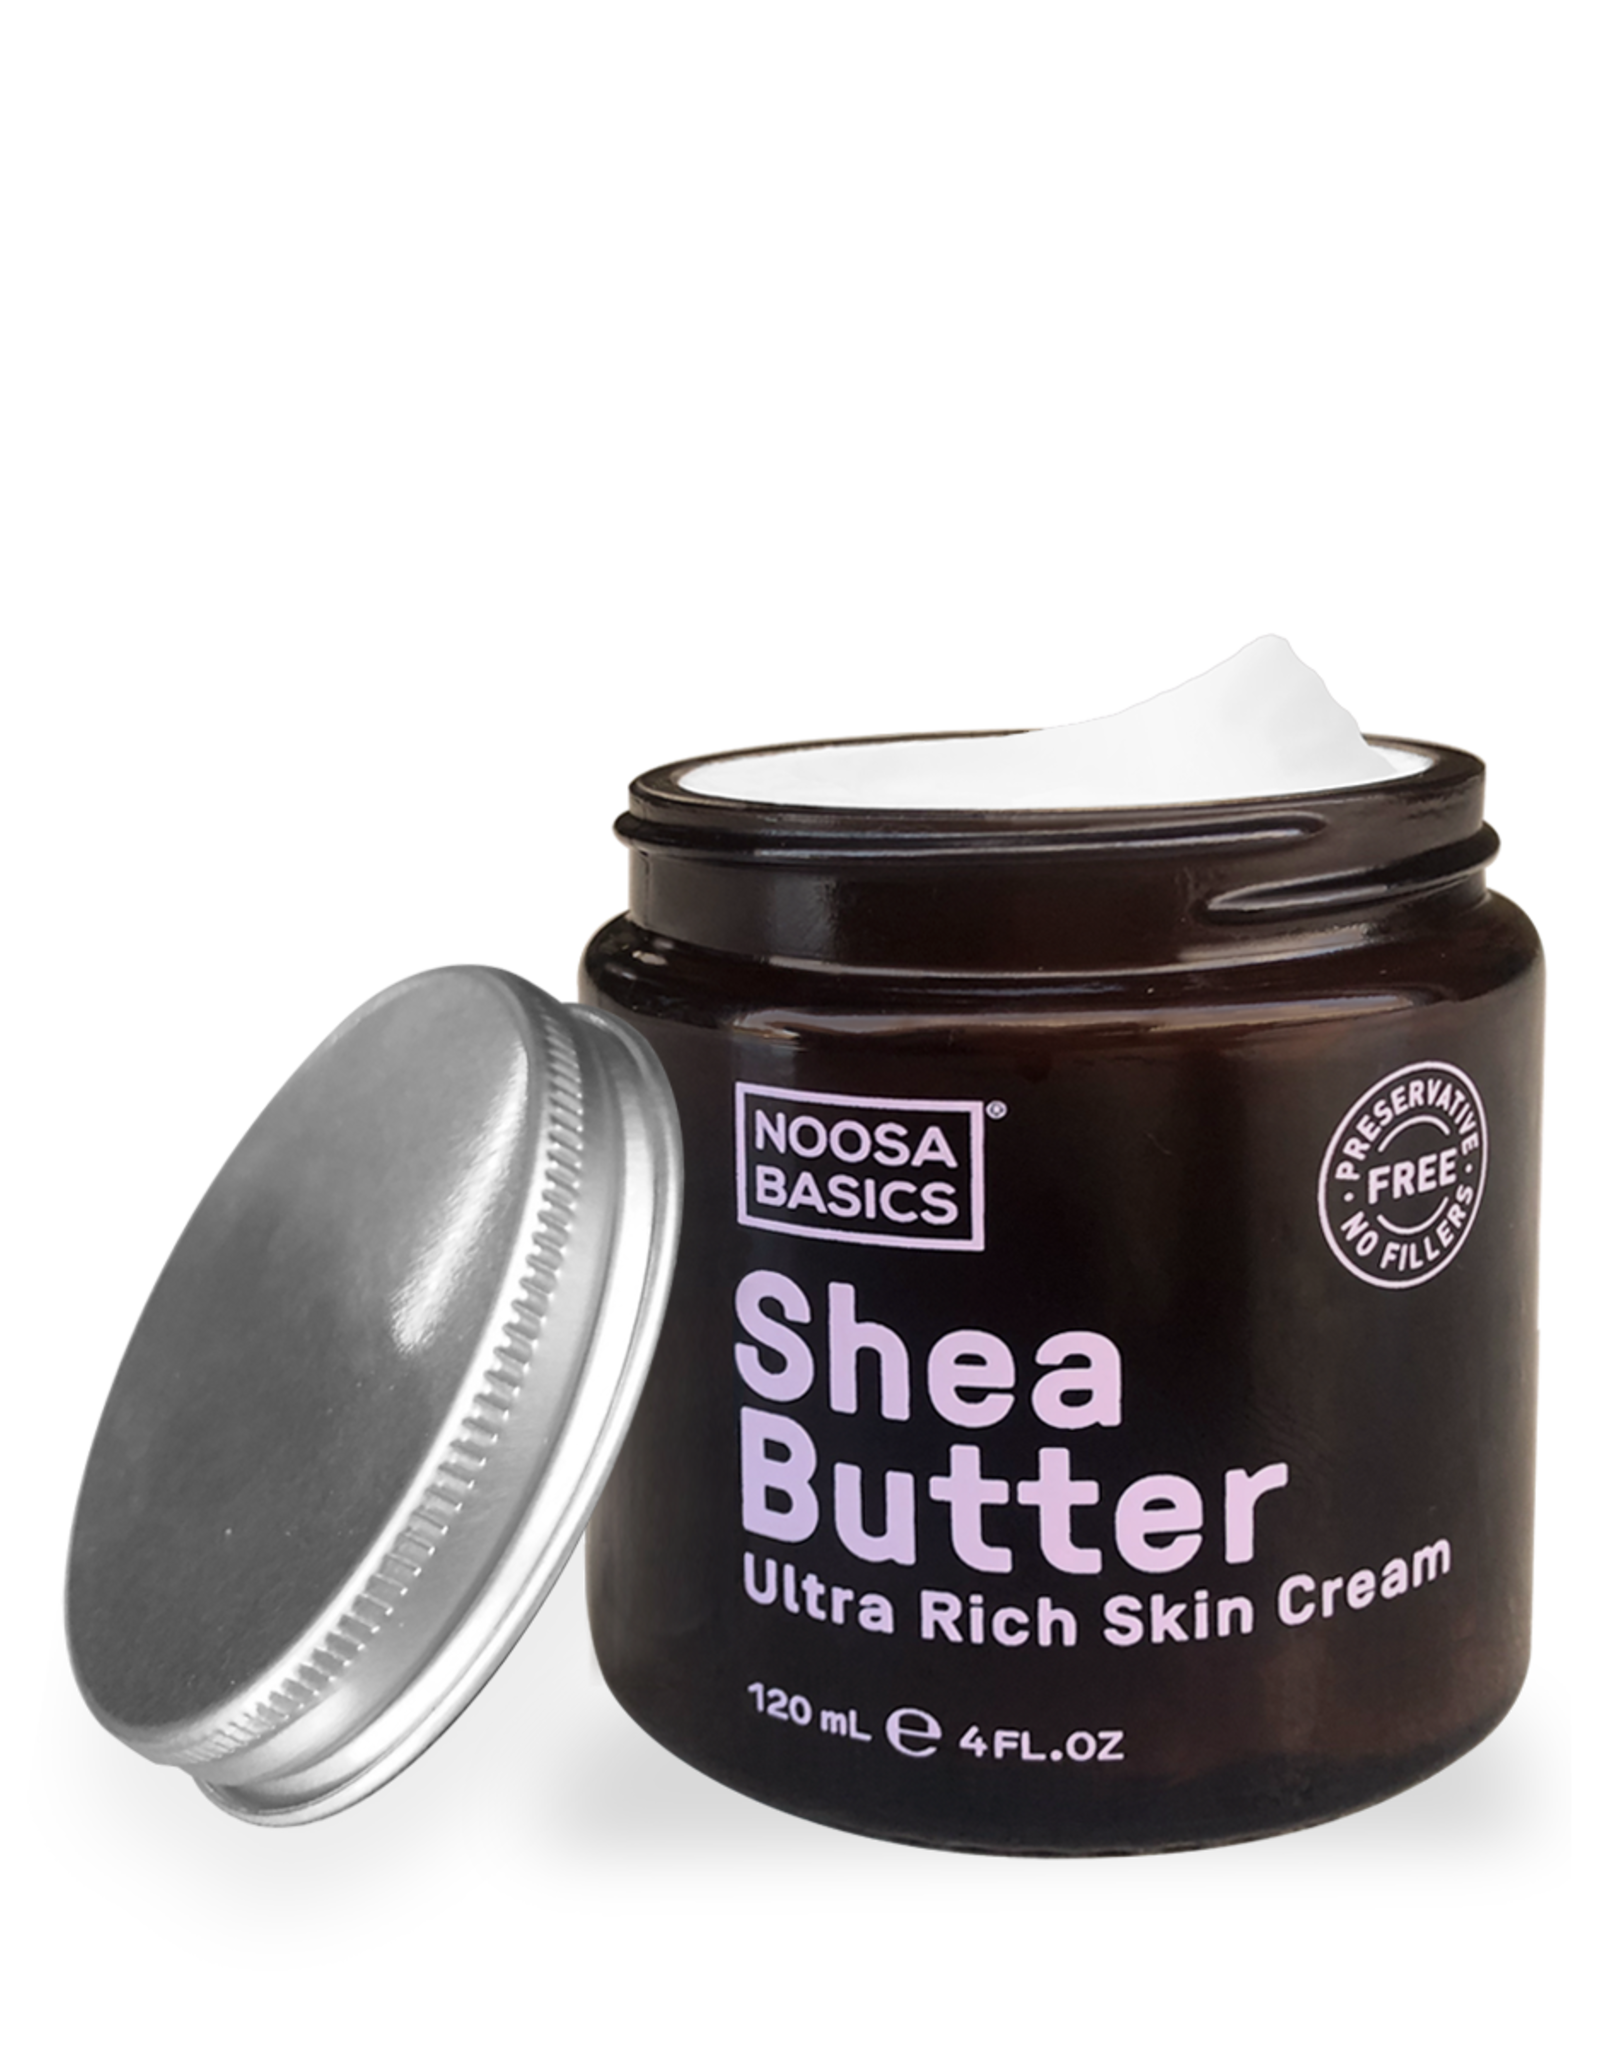 Noosa Basics Ultra Rich Skin Cream - Shea Butter - 120ml